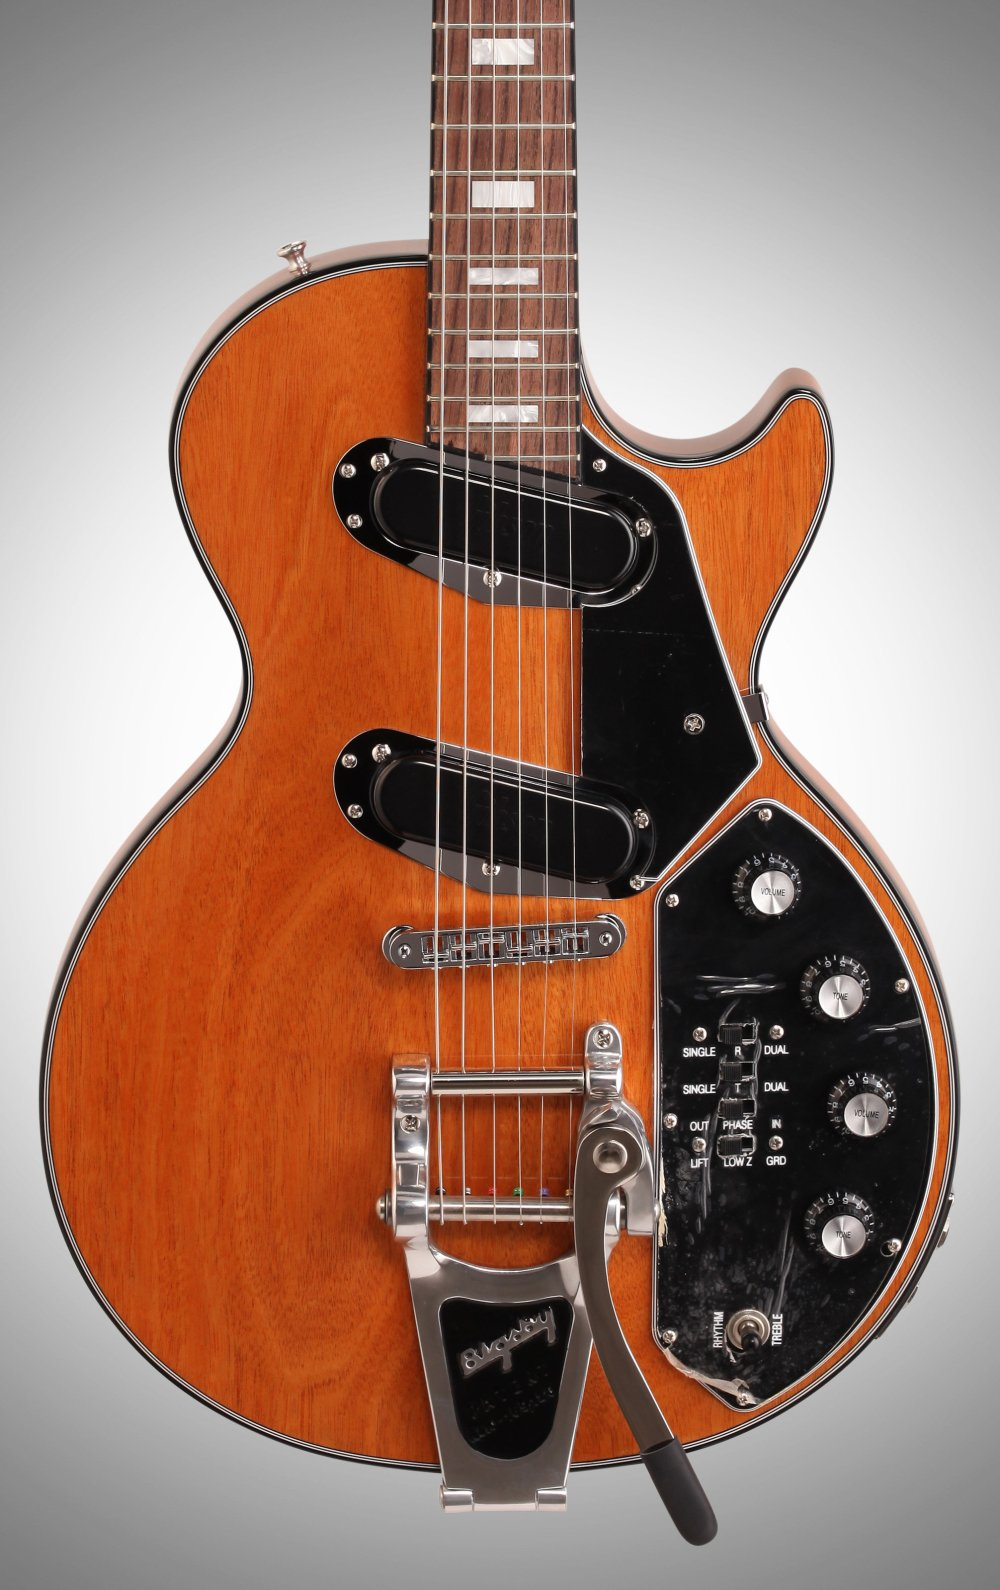 medium resolution of main woody s gibson les paul recording guitar page les paul bass gibson les paul recording manual mesa boogie has been enormously popular since arrival